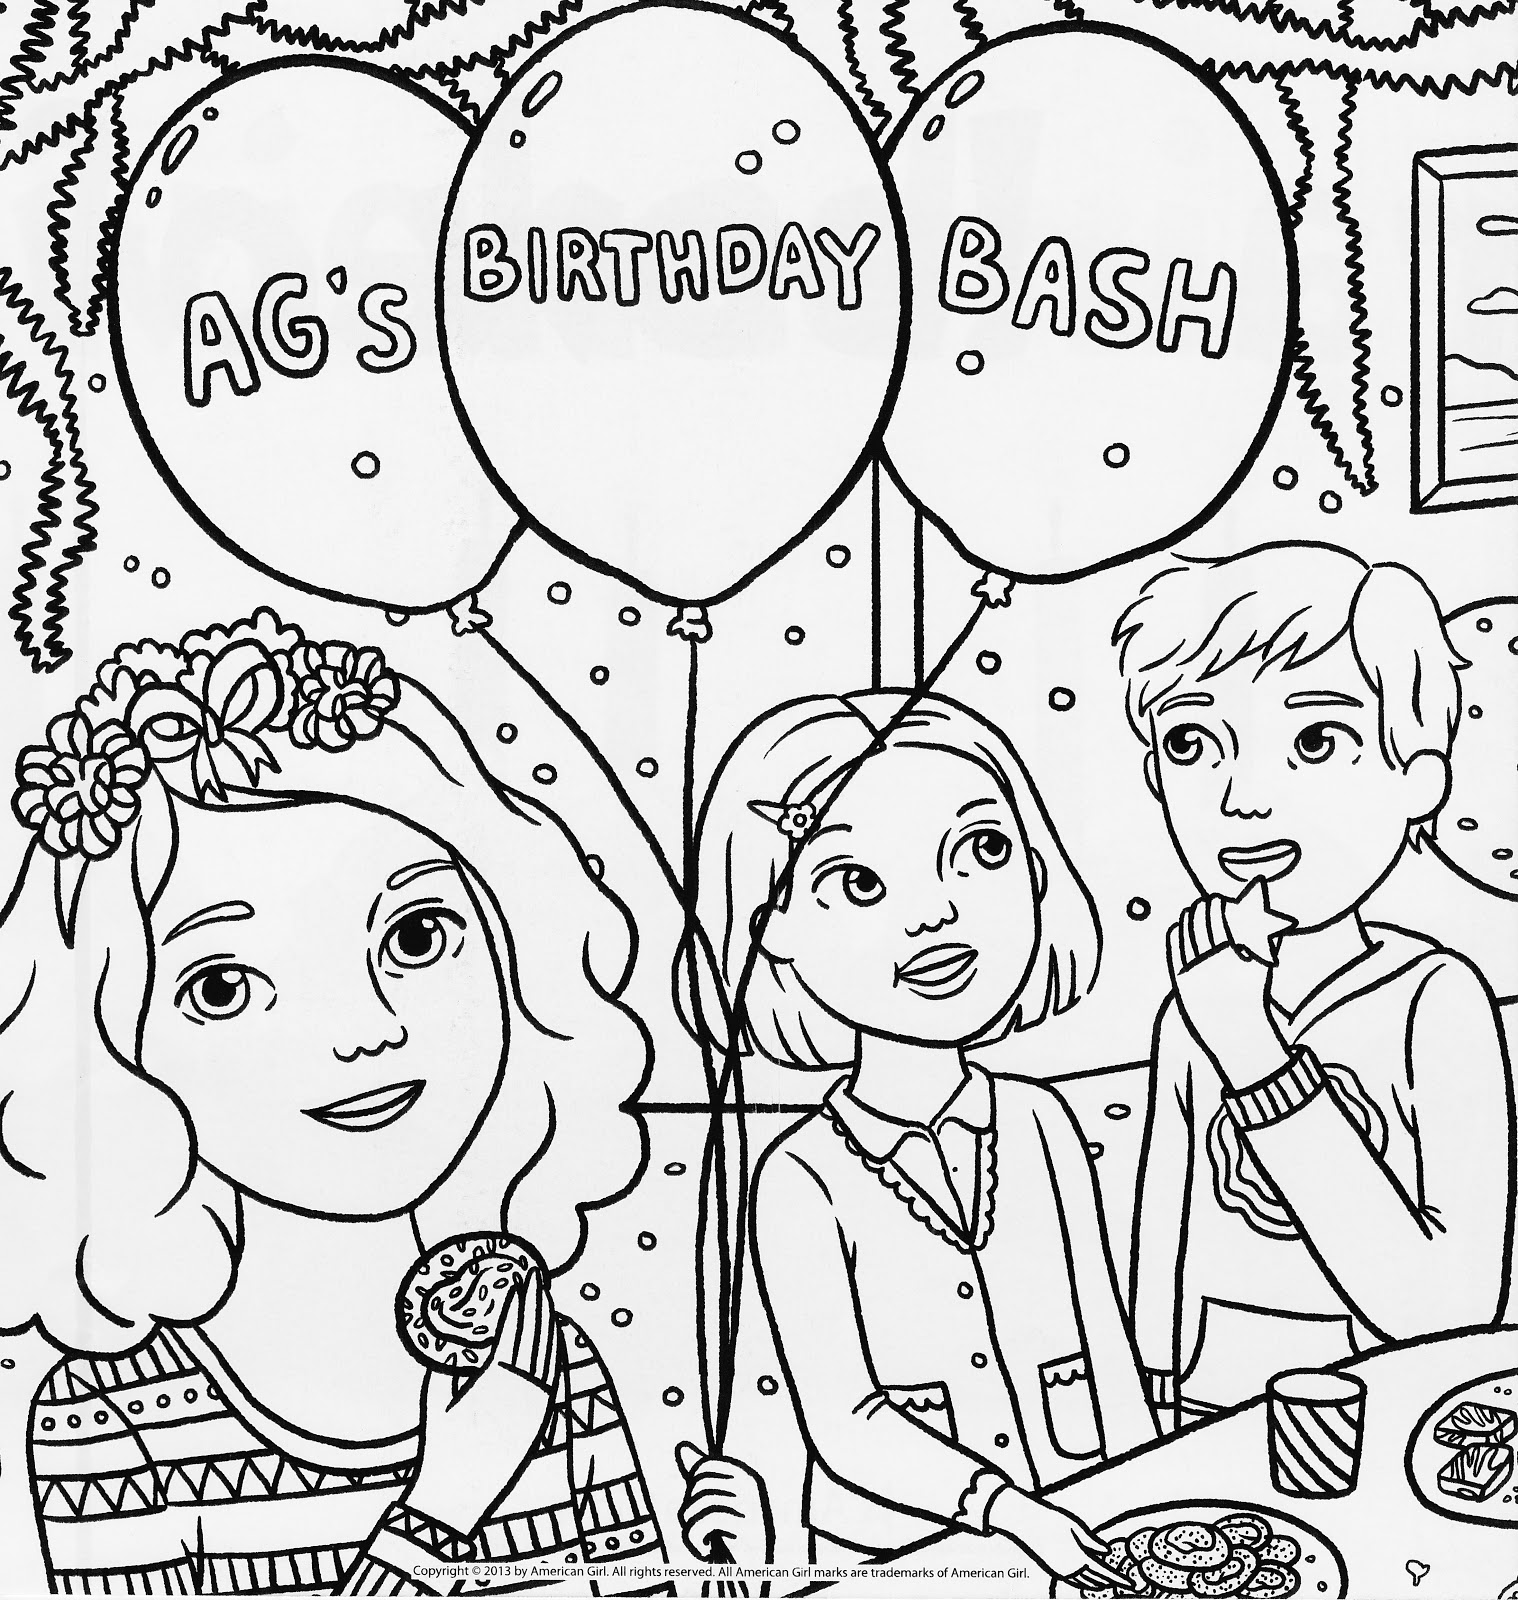 Bonggamom finds american girl magazine special birthday for American girl doll coloring page